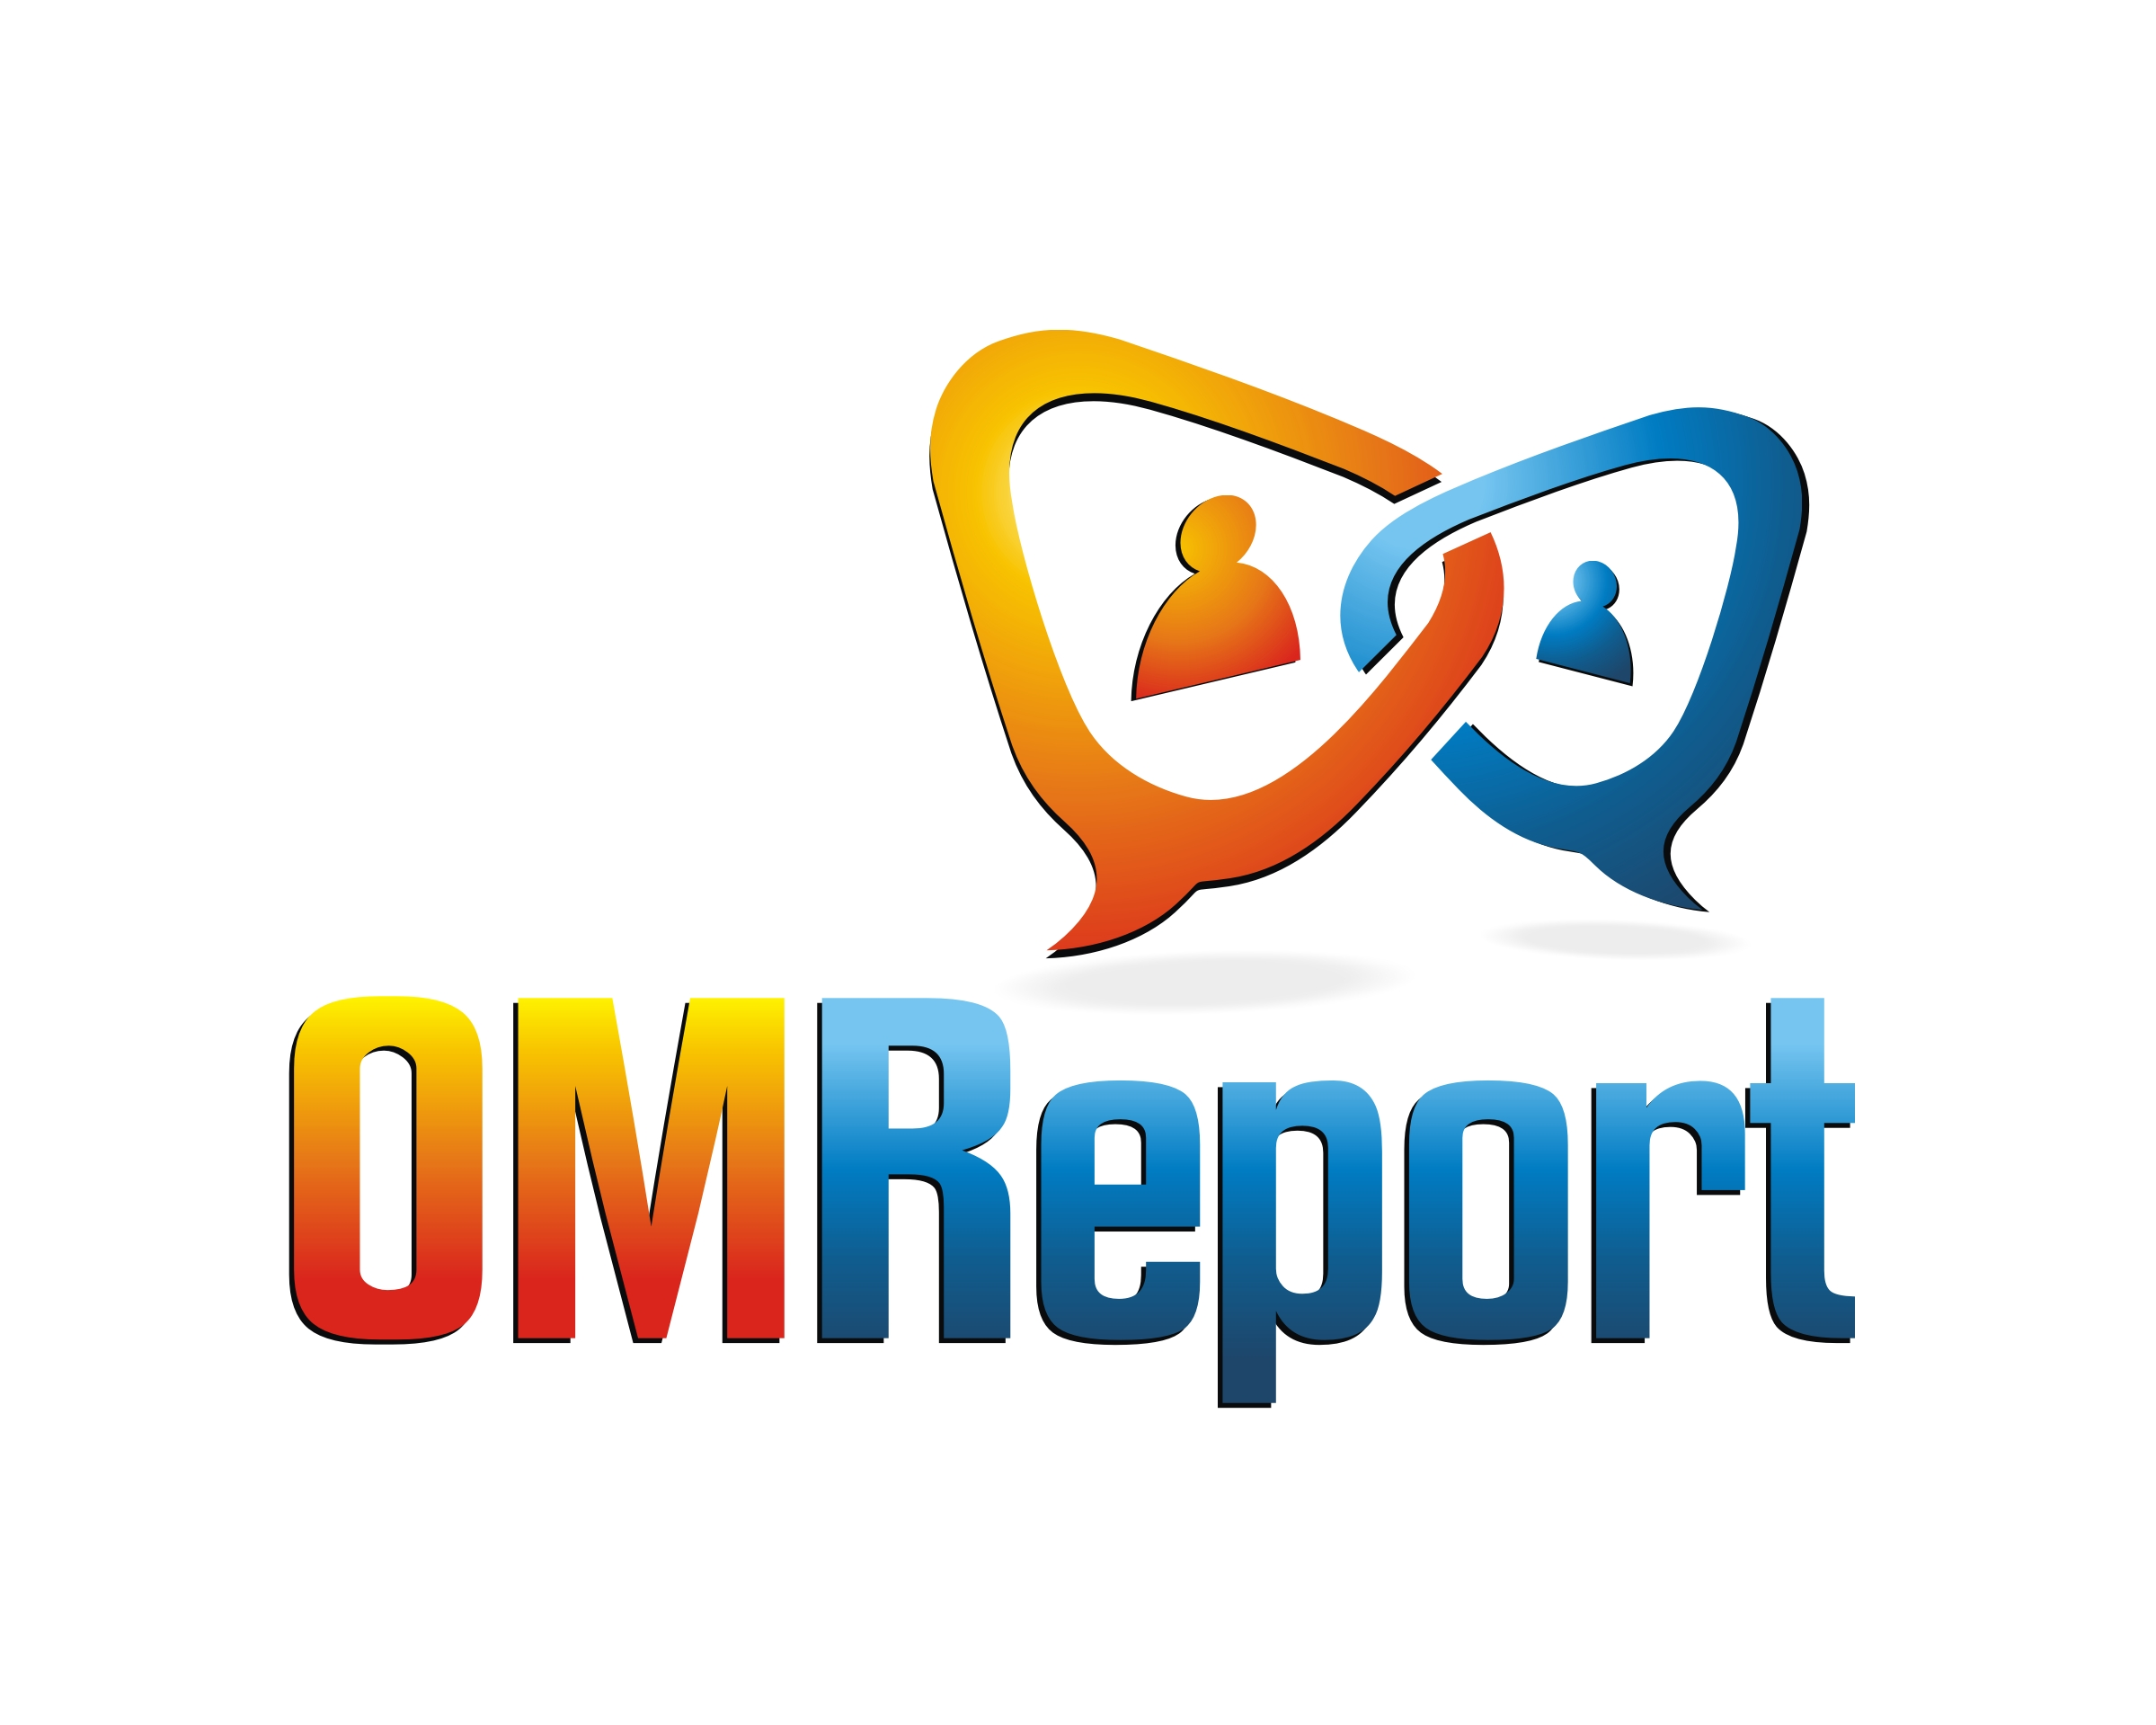 OMReport.com - A Podcast for Online Marketing and Internet Buisness